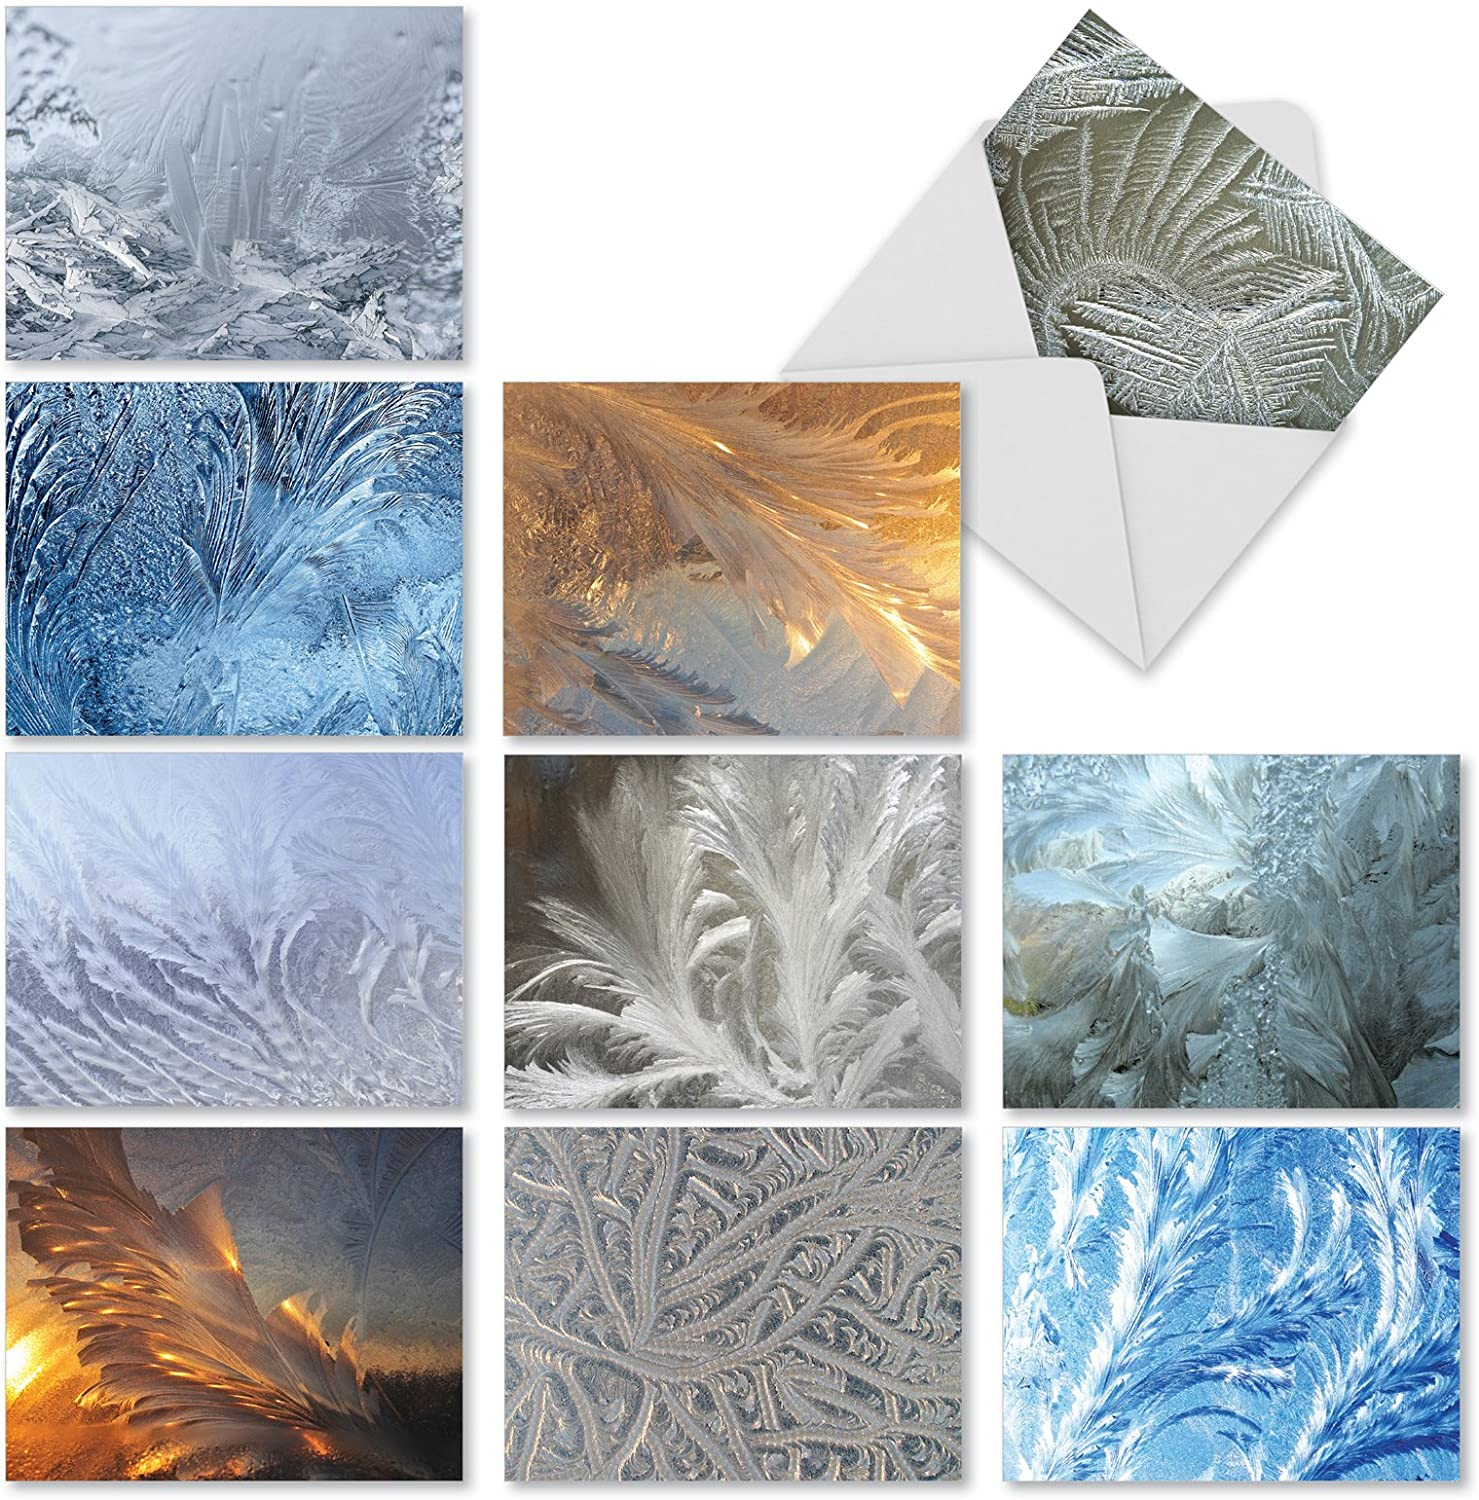 10 'Ice Feathers' Blank Note Cards with Envelopes 4 x 5.12 inch, Boxed Greeting Cards w/Stunning Ice formation Close Ups, Assorted Stationery for Christmas, New Year, Holidays, Winter M3283